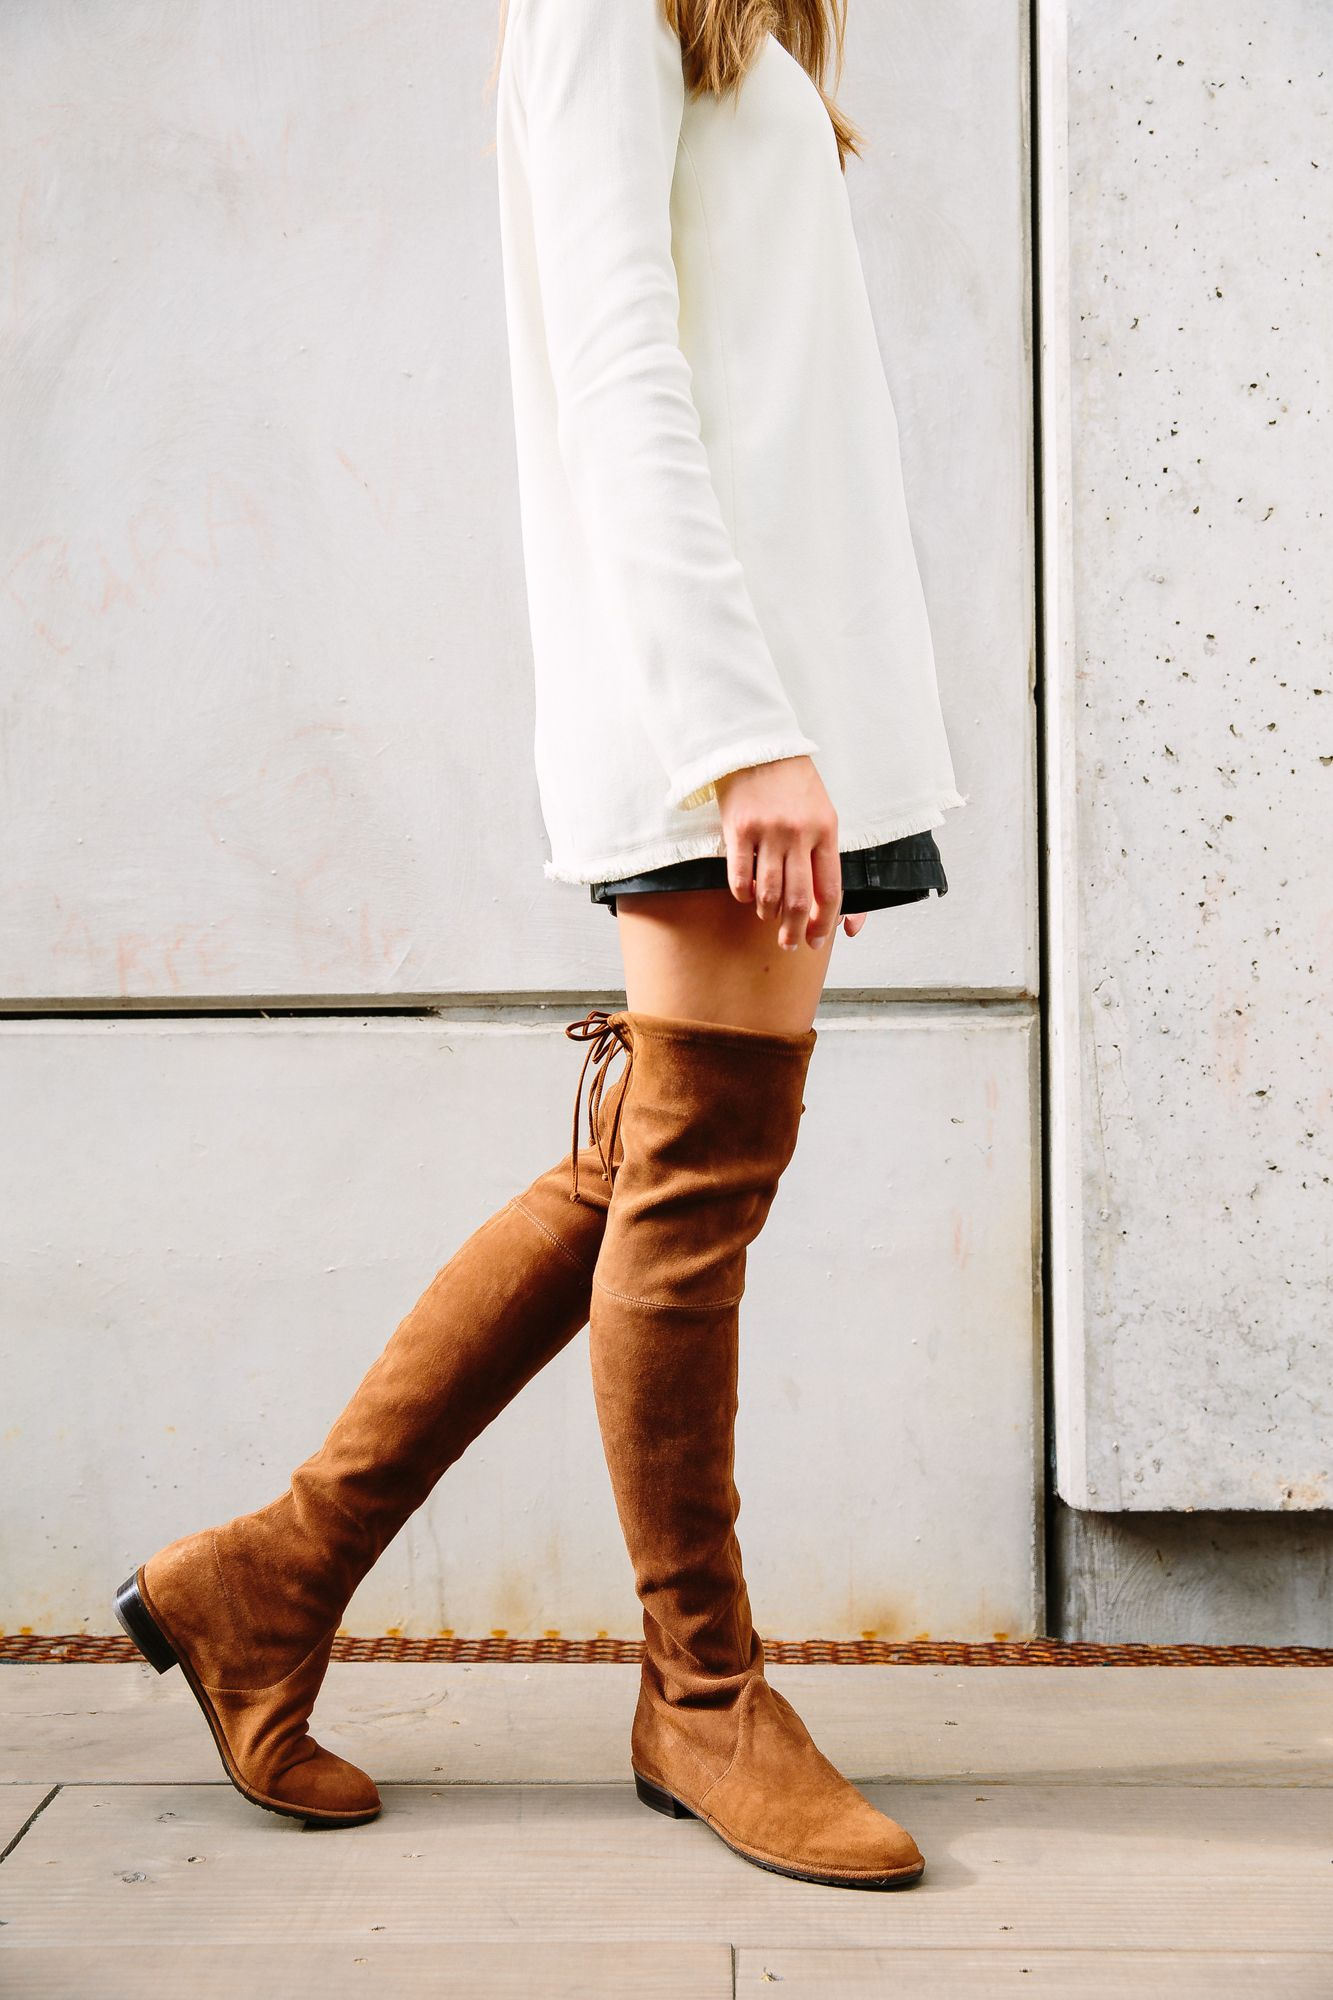 658222e5e74 Camille Styles in the LOWLAND Boots in the Walnut Suede.